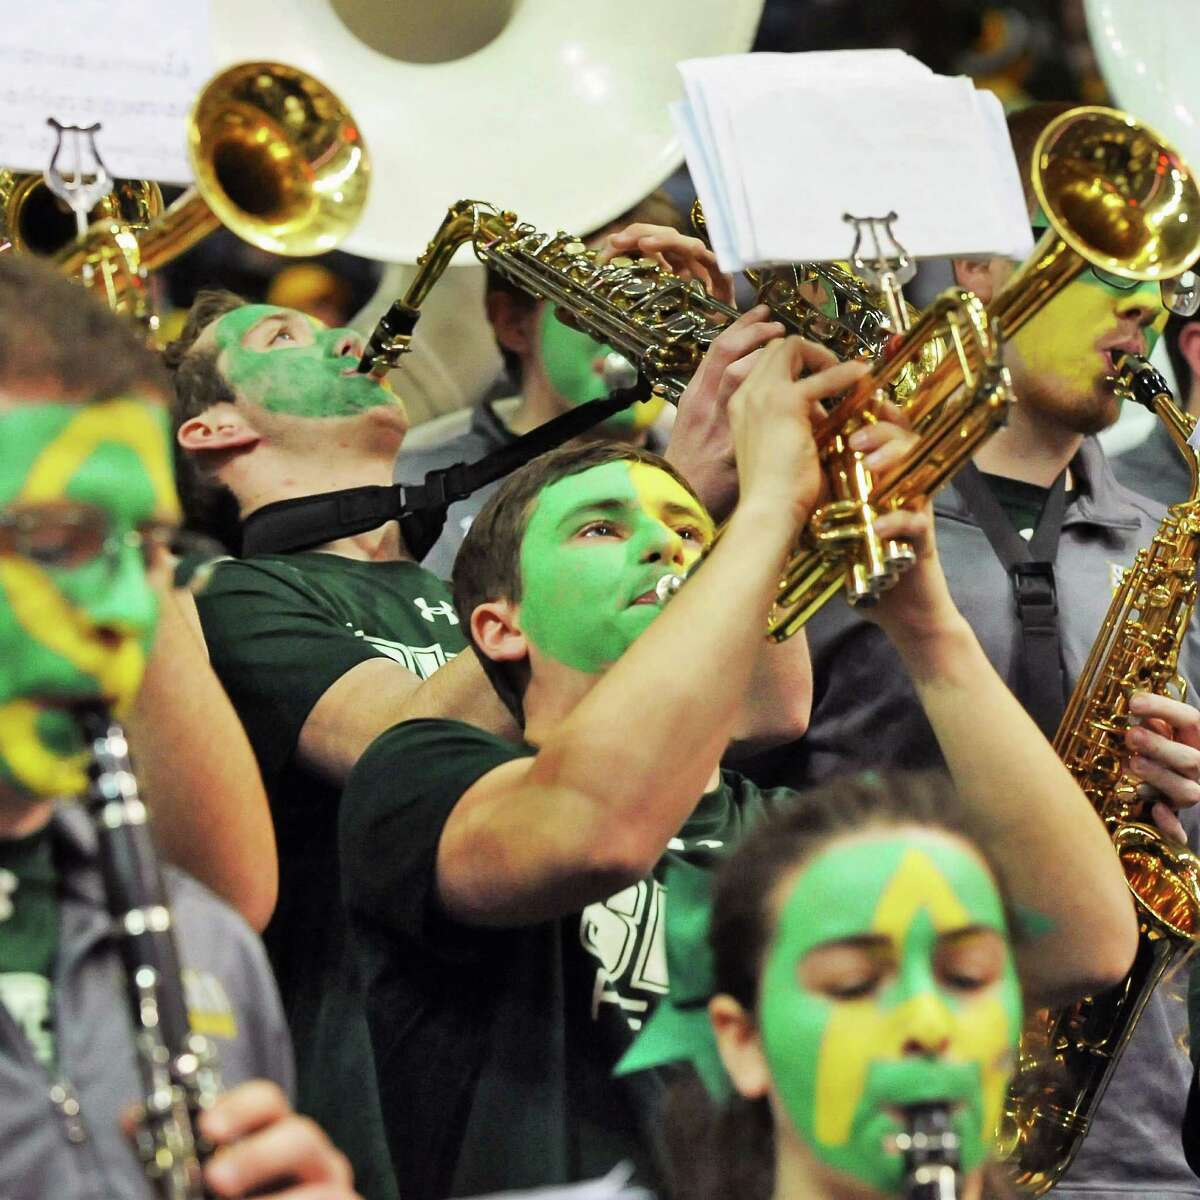 Siena's pep band performs during their MAAC tournament game against Manhattan at the Times Union Center Saturday March 5, 2016 in Albany, NY. (John Carl D'Annibale / Times Union)